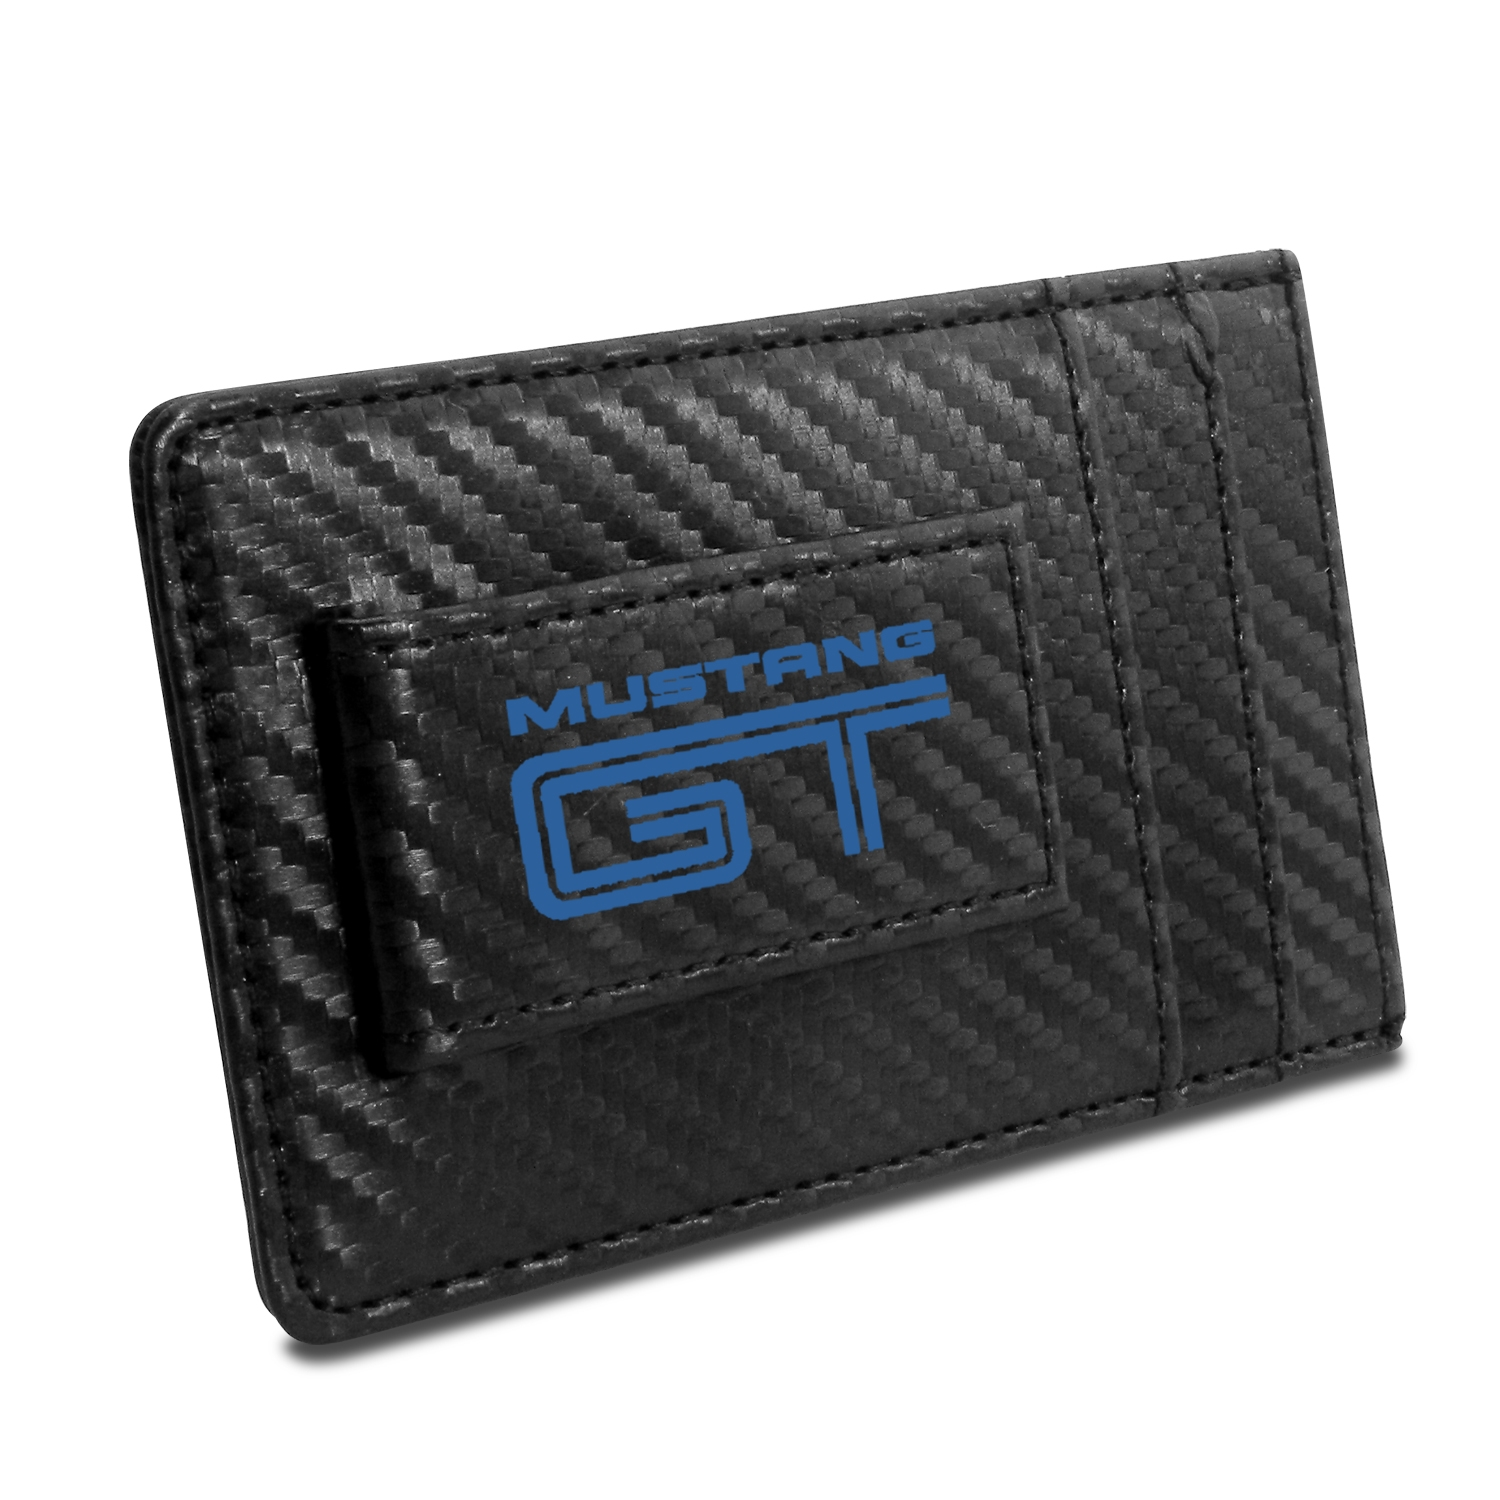 Ford Mustang GT in BlueBlack Carbon Fiber RFID Card Holder Wallet